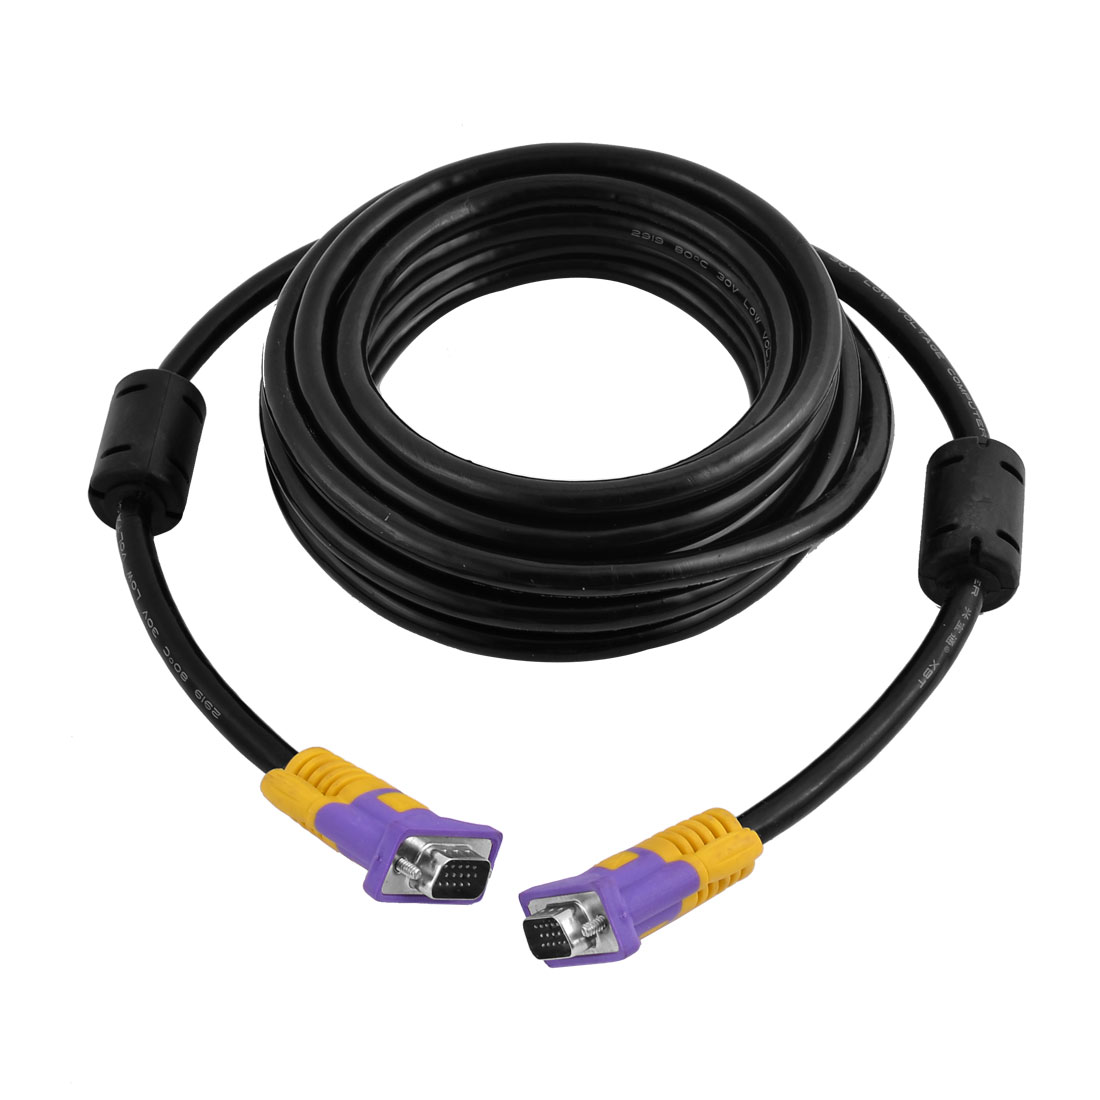 10Ft HD 15pin Male to Male M/M VGA Monitor Extension Cable Cord